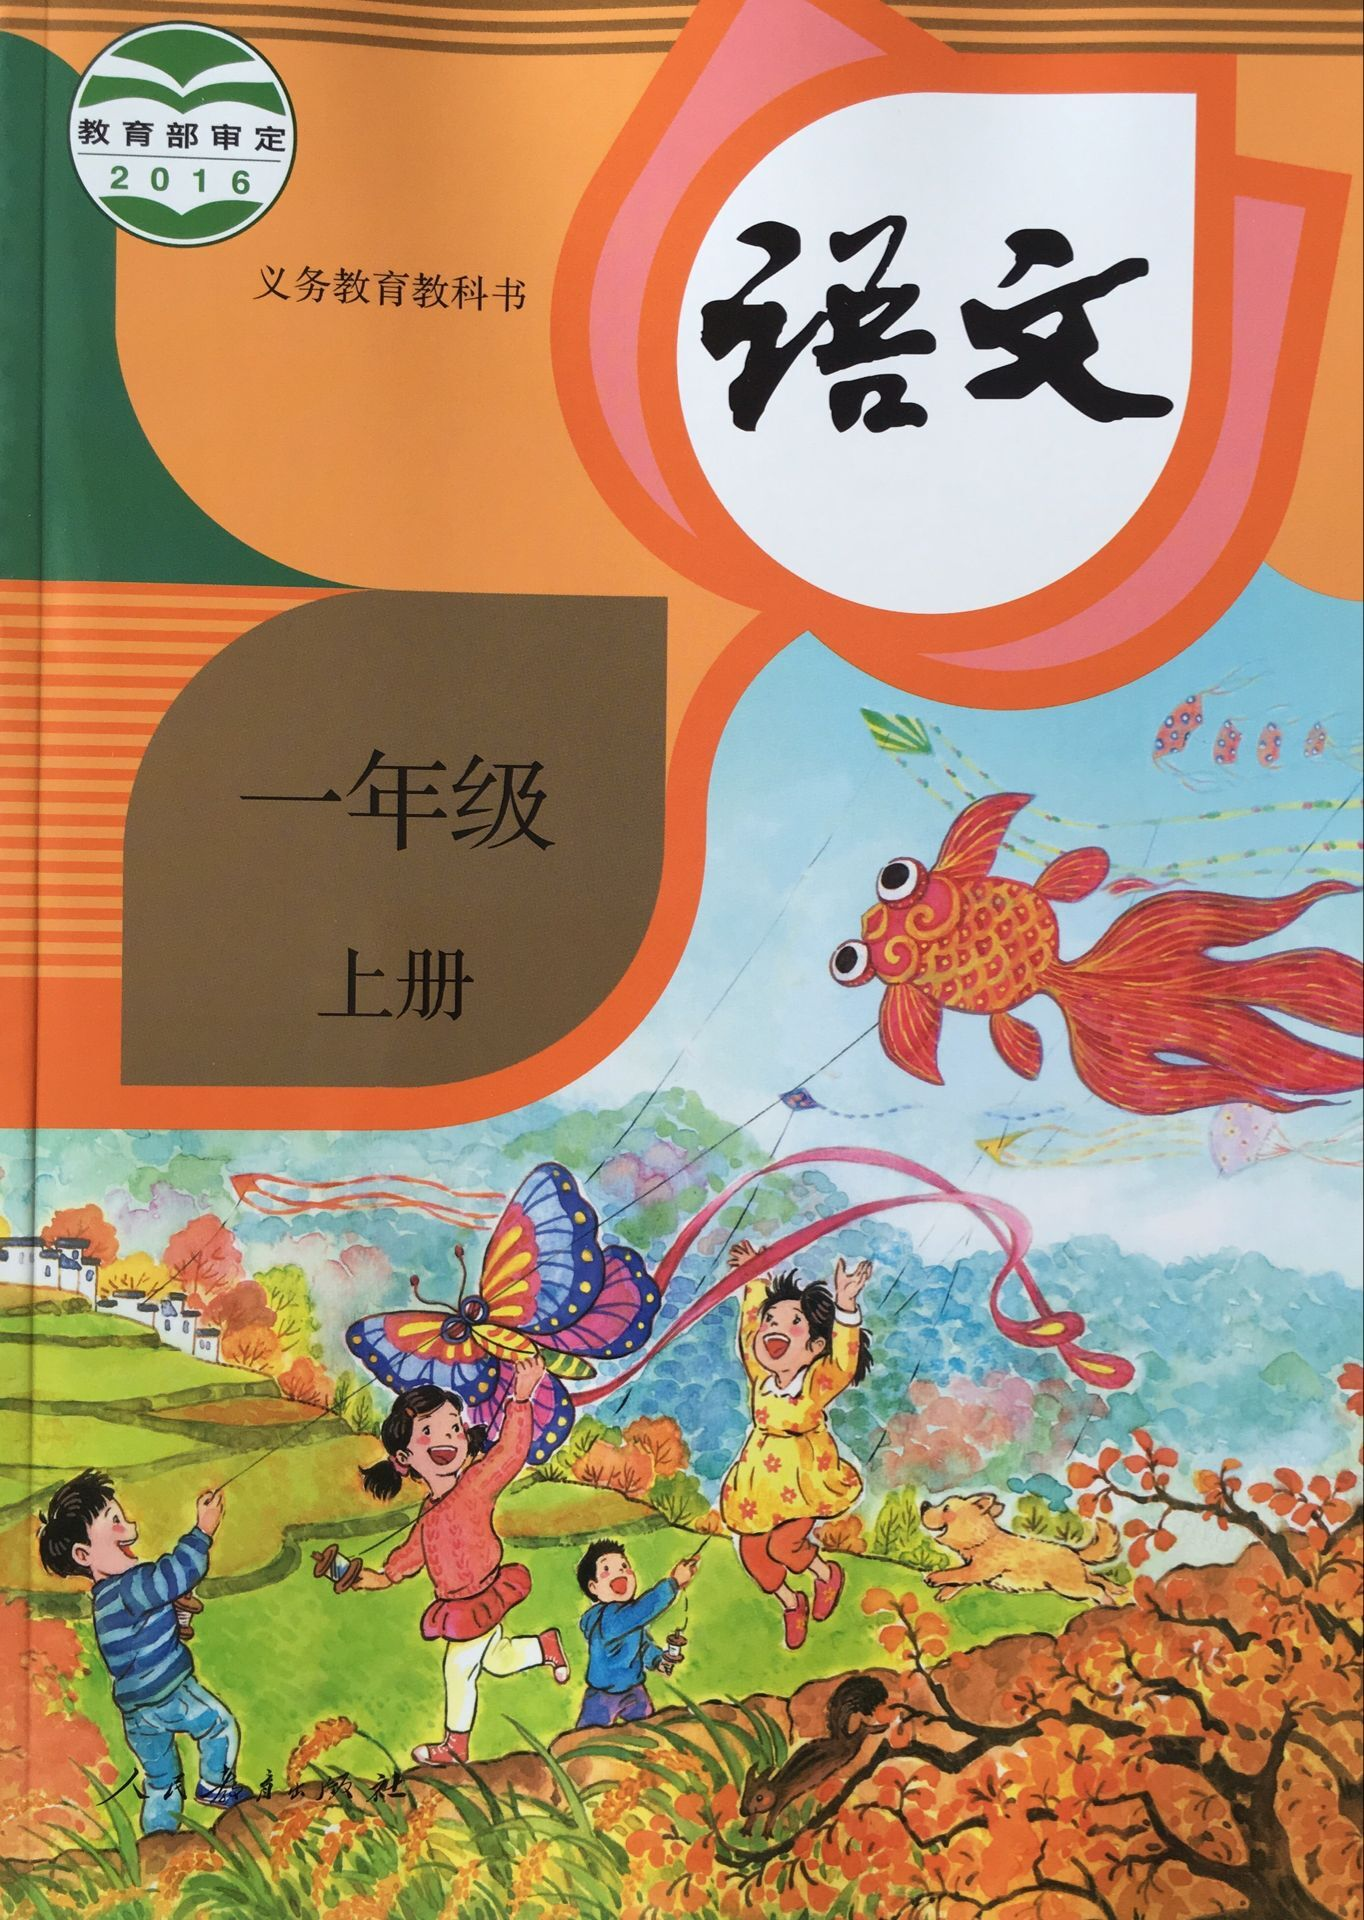 Фото - Primary School Chinese for beginners Grade1 Volume I Students' Book Learn Chinese textbook Learning Chinese Textbook First Grade 2pcs chinese textbook grade 3 volume i and volume 2 for elementary school children kids early educational textbook